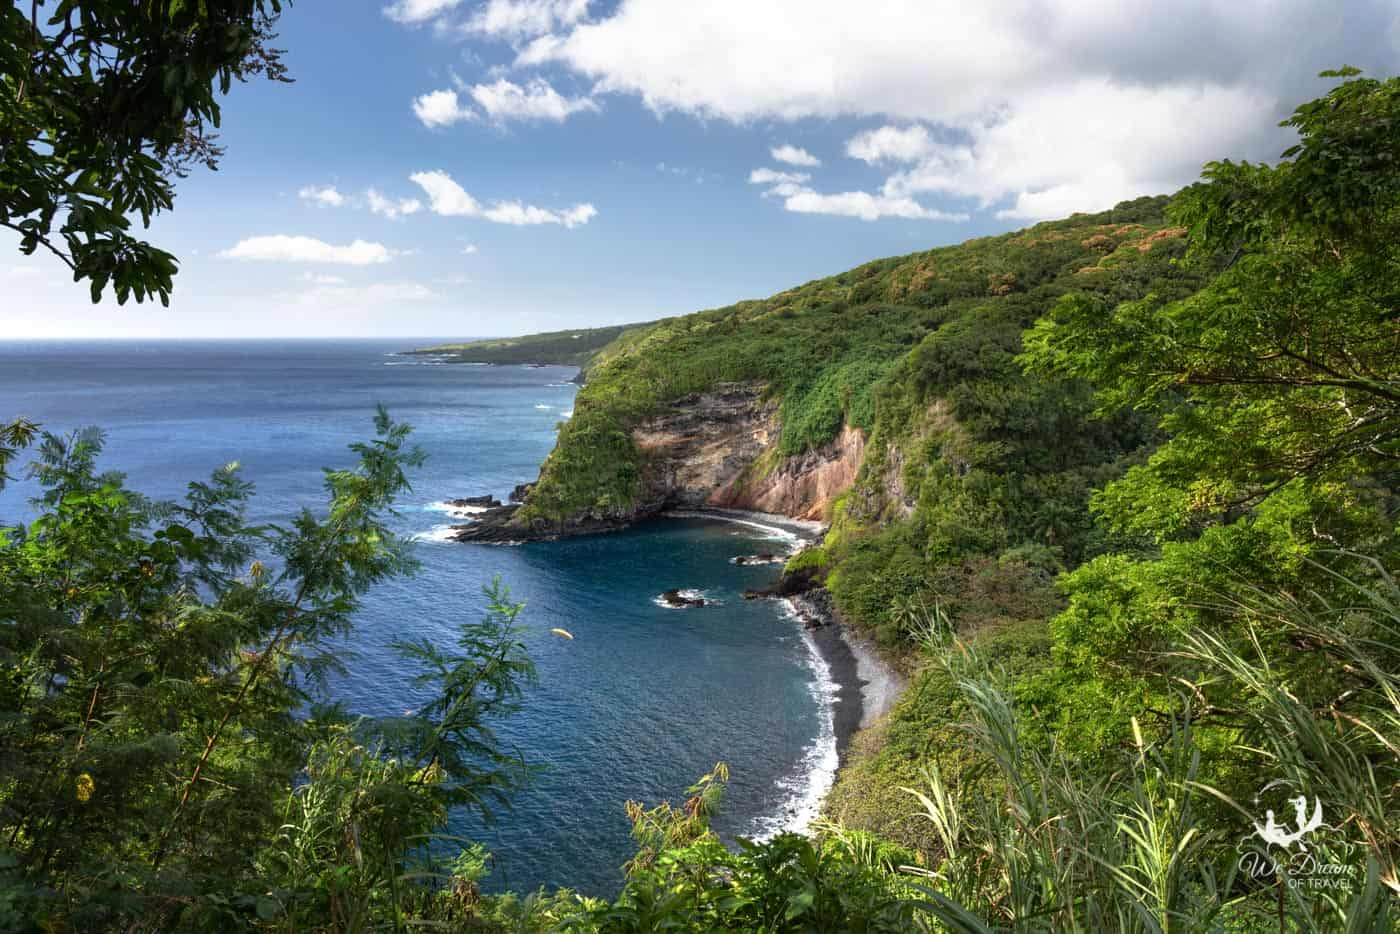 Photographing Maui's black sand beach from above